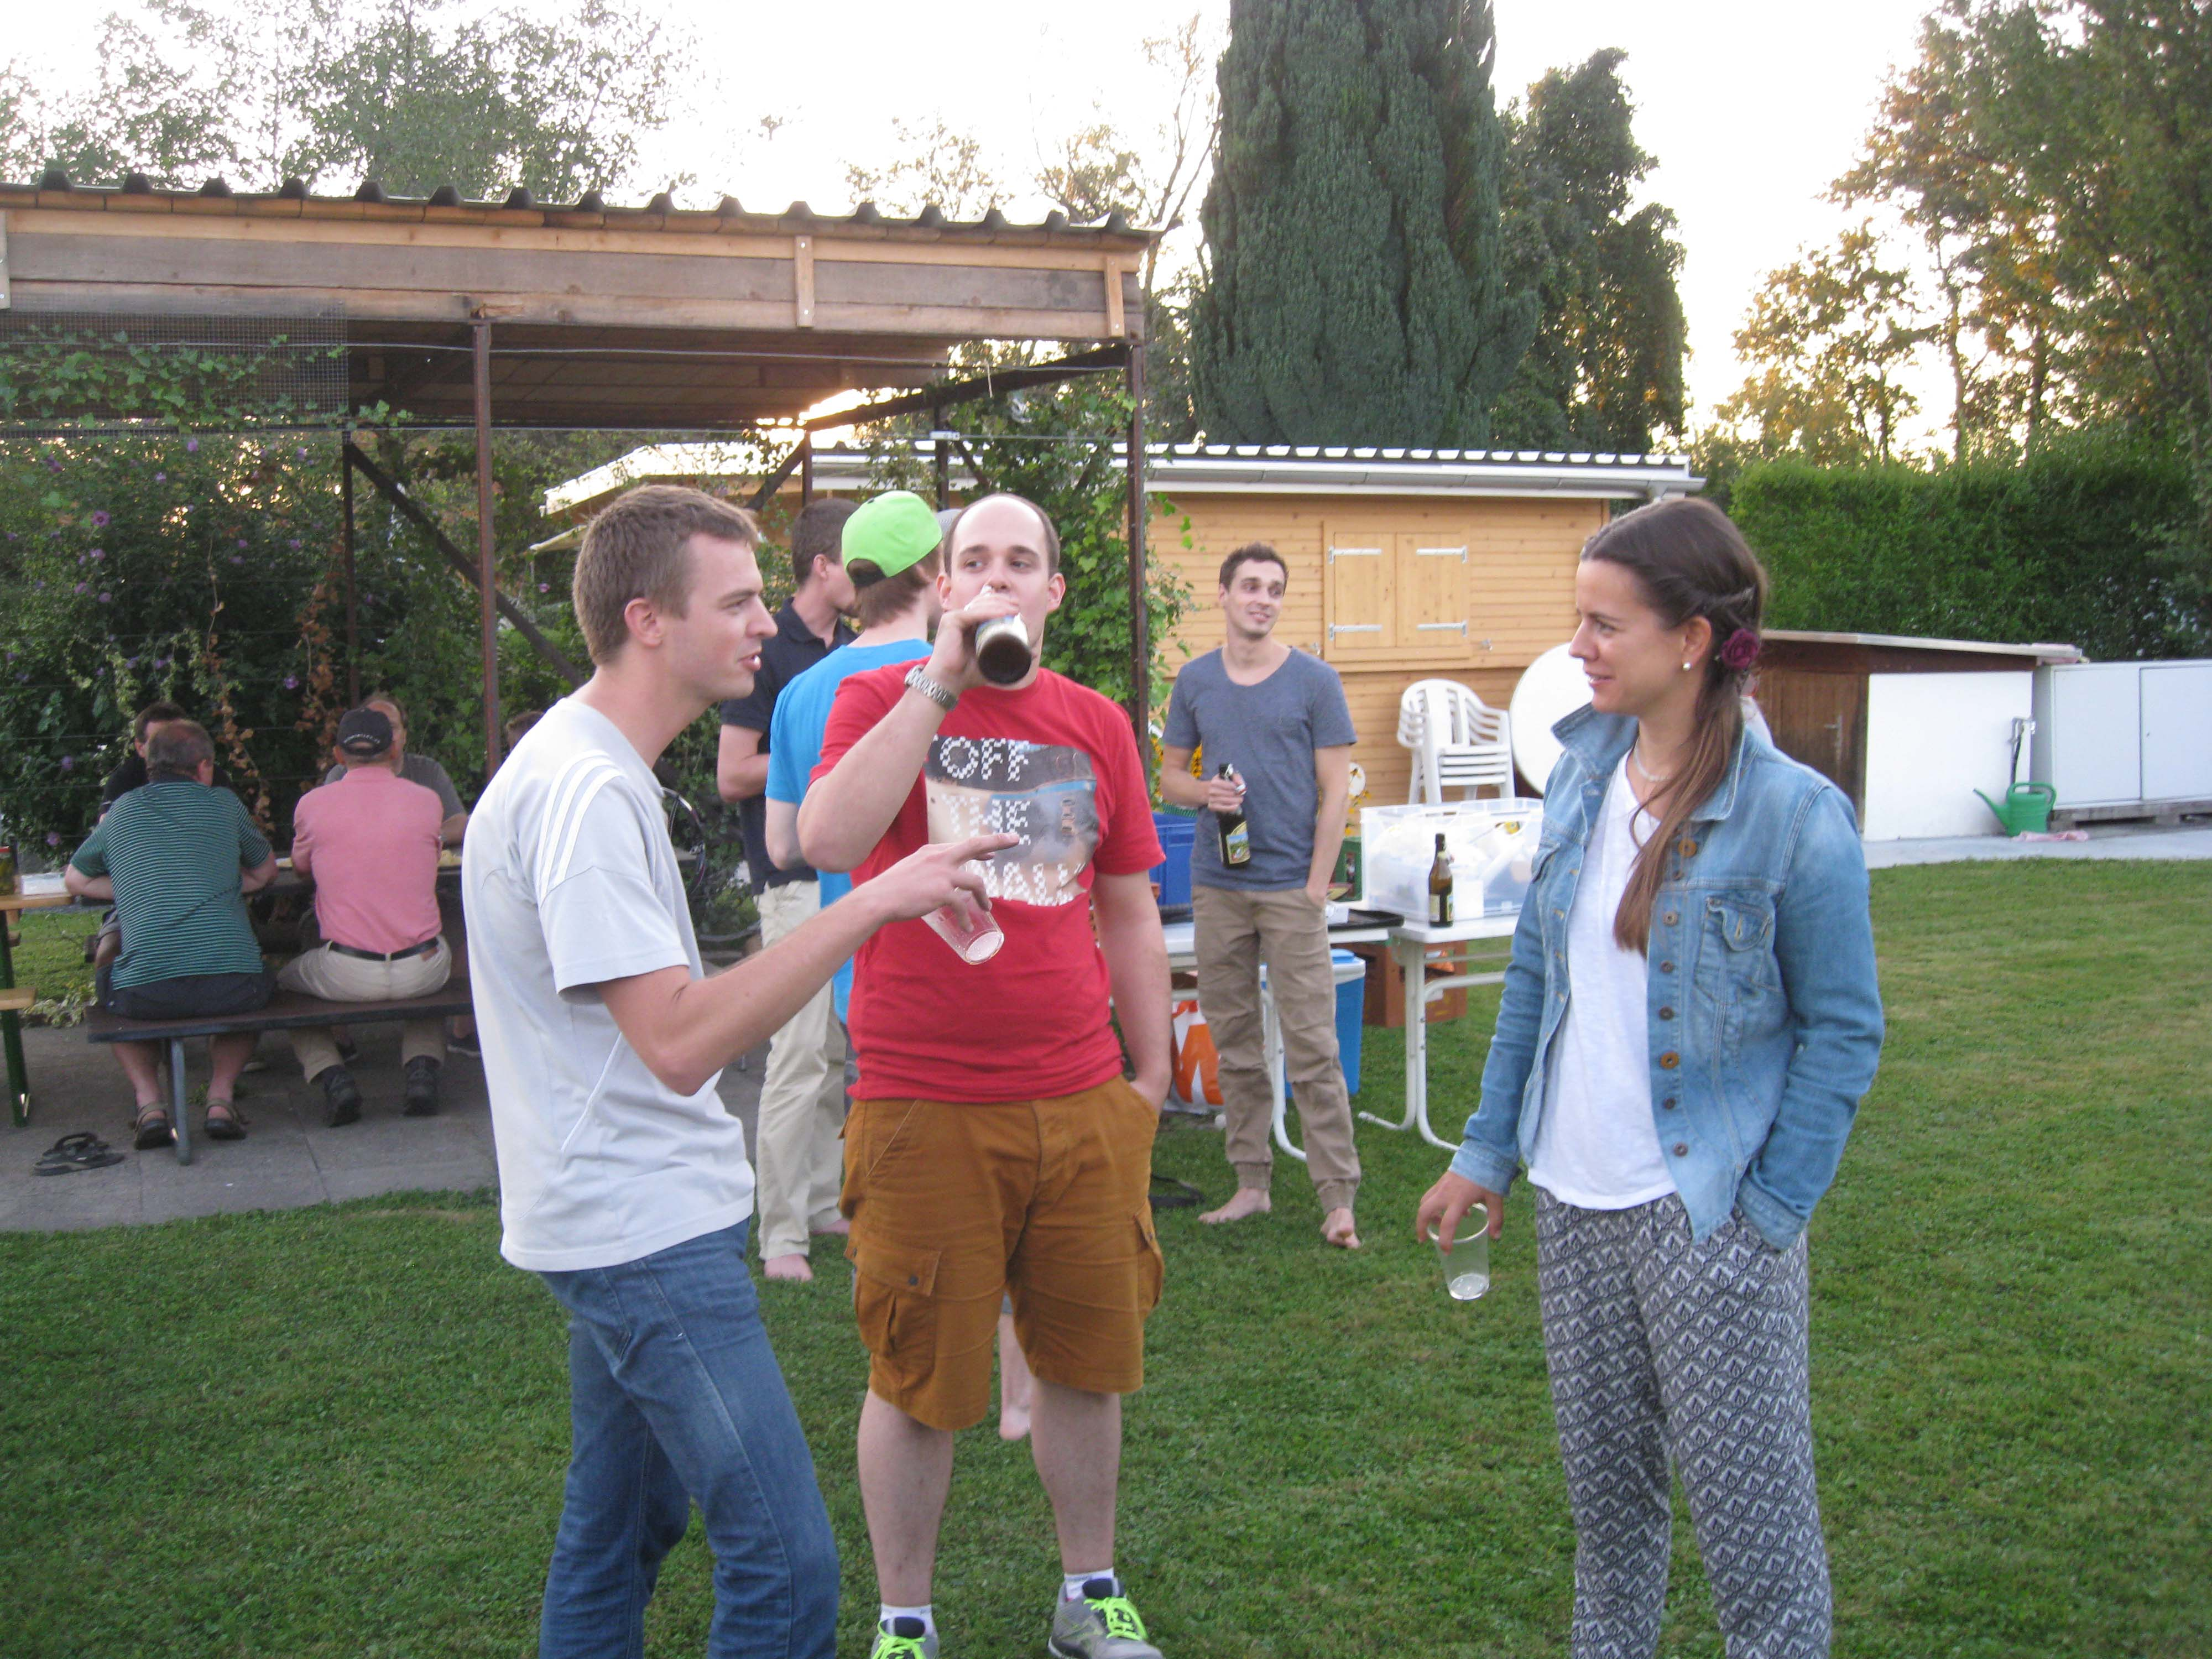 2015-08-21-2018-Raclette-Stampf-Rac-CE-lette-Stampf-IMG-CE-4512-web